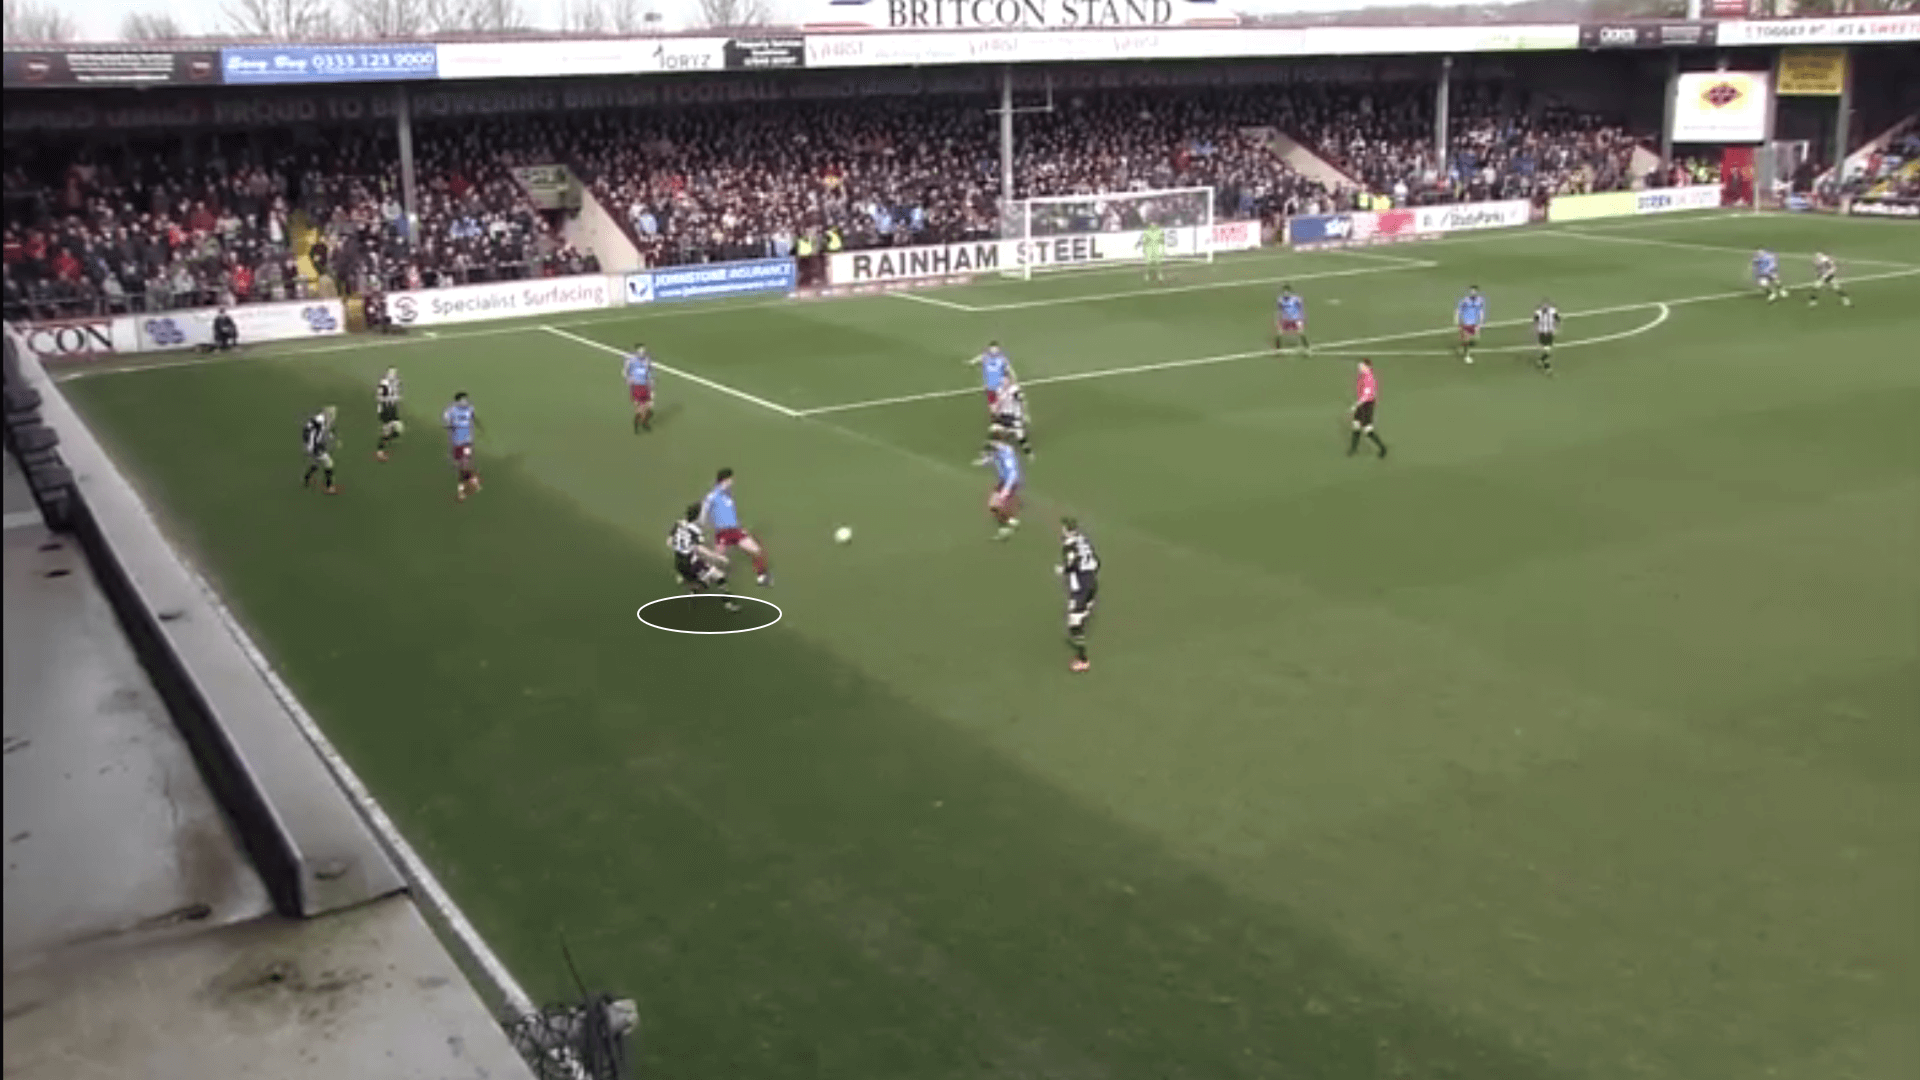 Ian Holloway at Grimsby Town 2019/20 - tactical analysis tactics